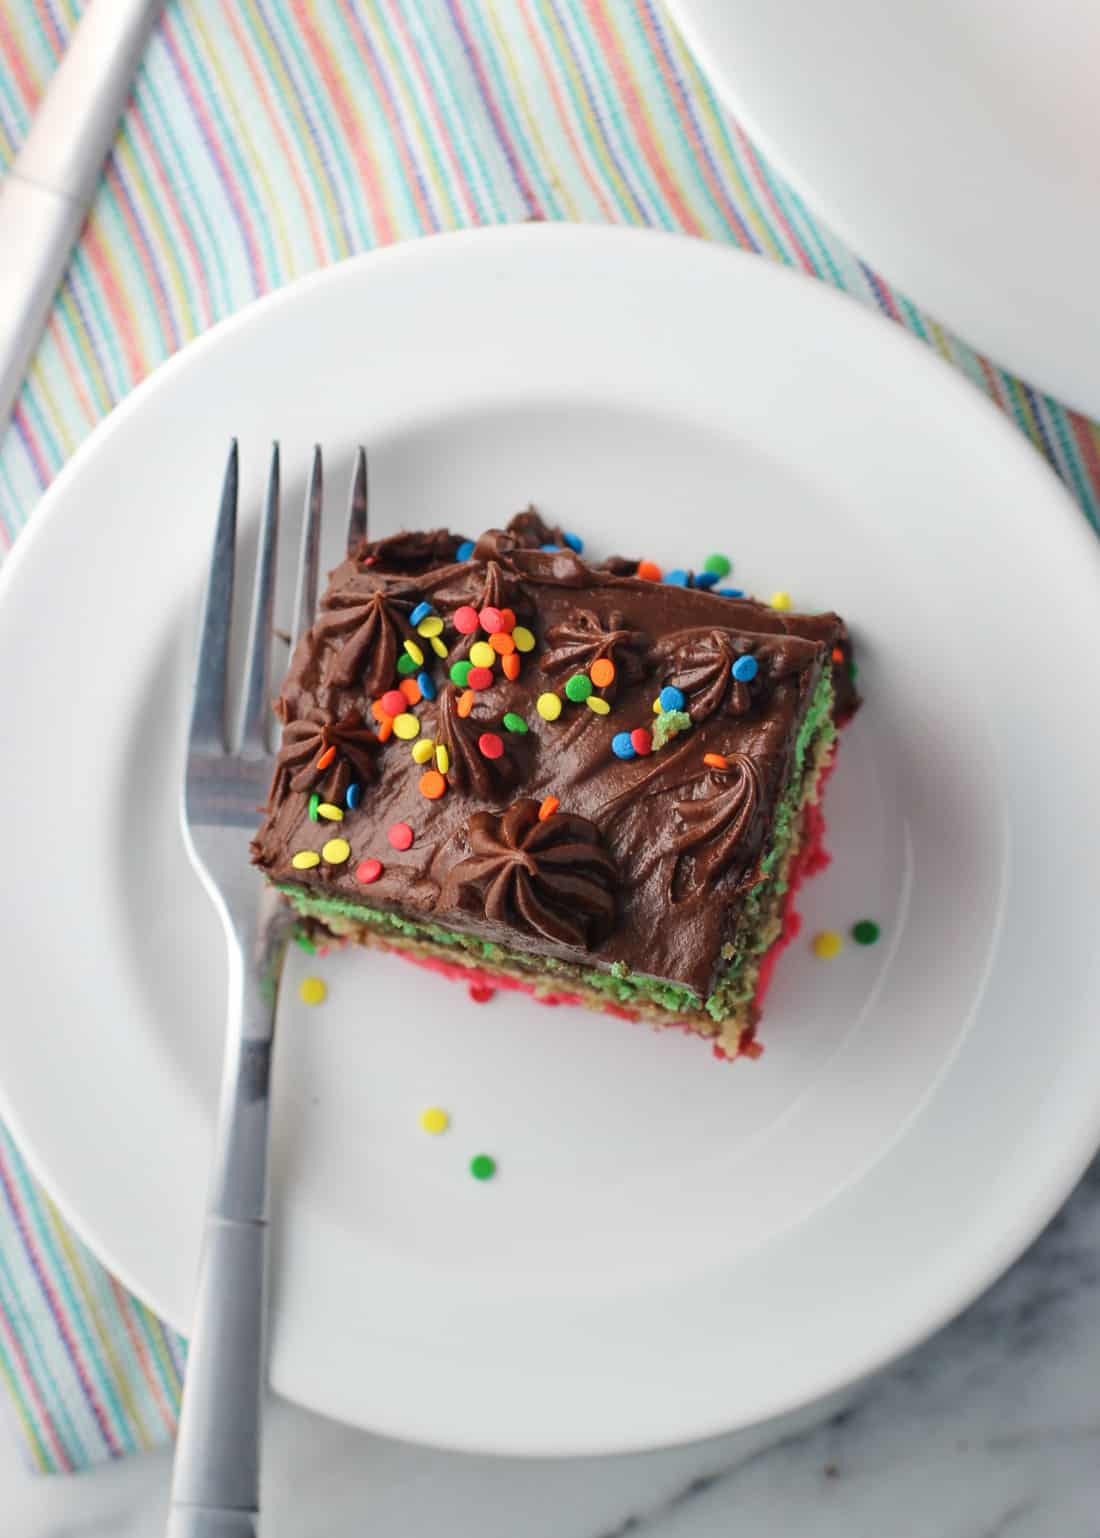 This rainbow cookie cake consists of three spongy, almond-flavored layers with chocolate raspberry frosting in between, and is topped with fluffy chocolate frosting. Each slice of this cake is like digging into one huge rainbow cookie - except with more chocolate!